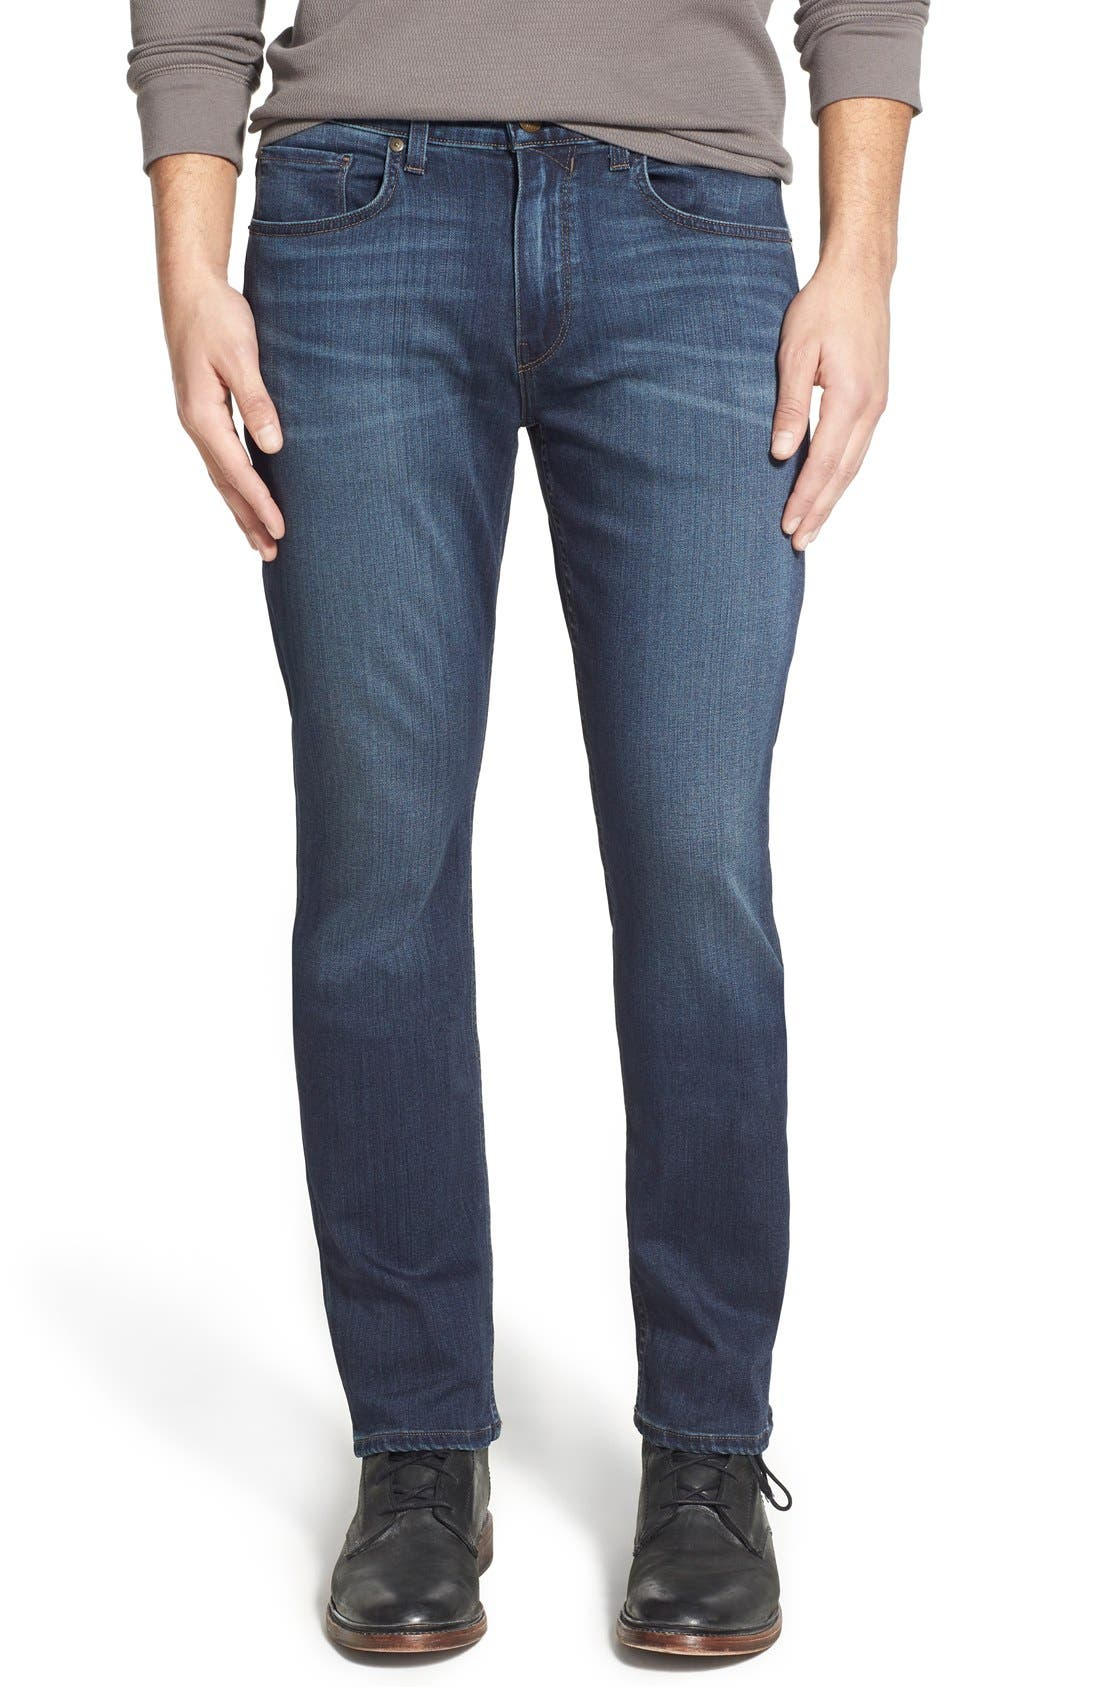 'Federal' Slim Straight Leg Jeans,                         Main,                         color, Blakely